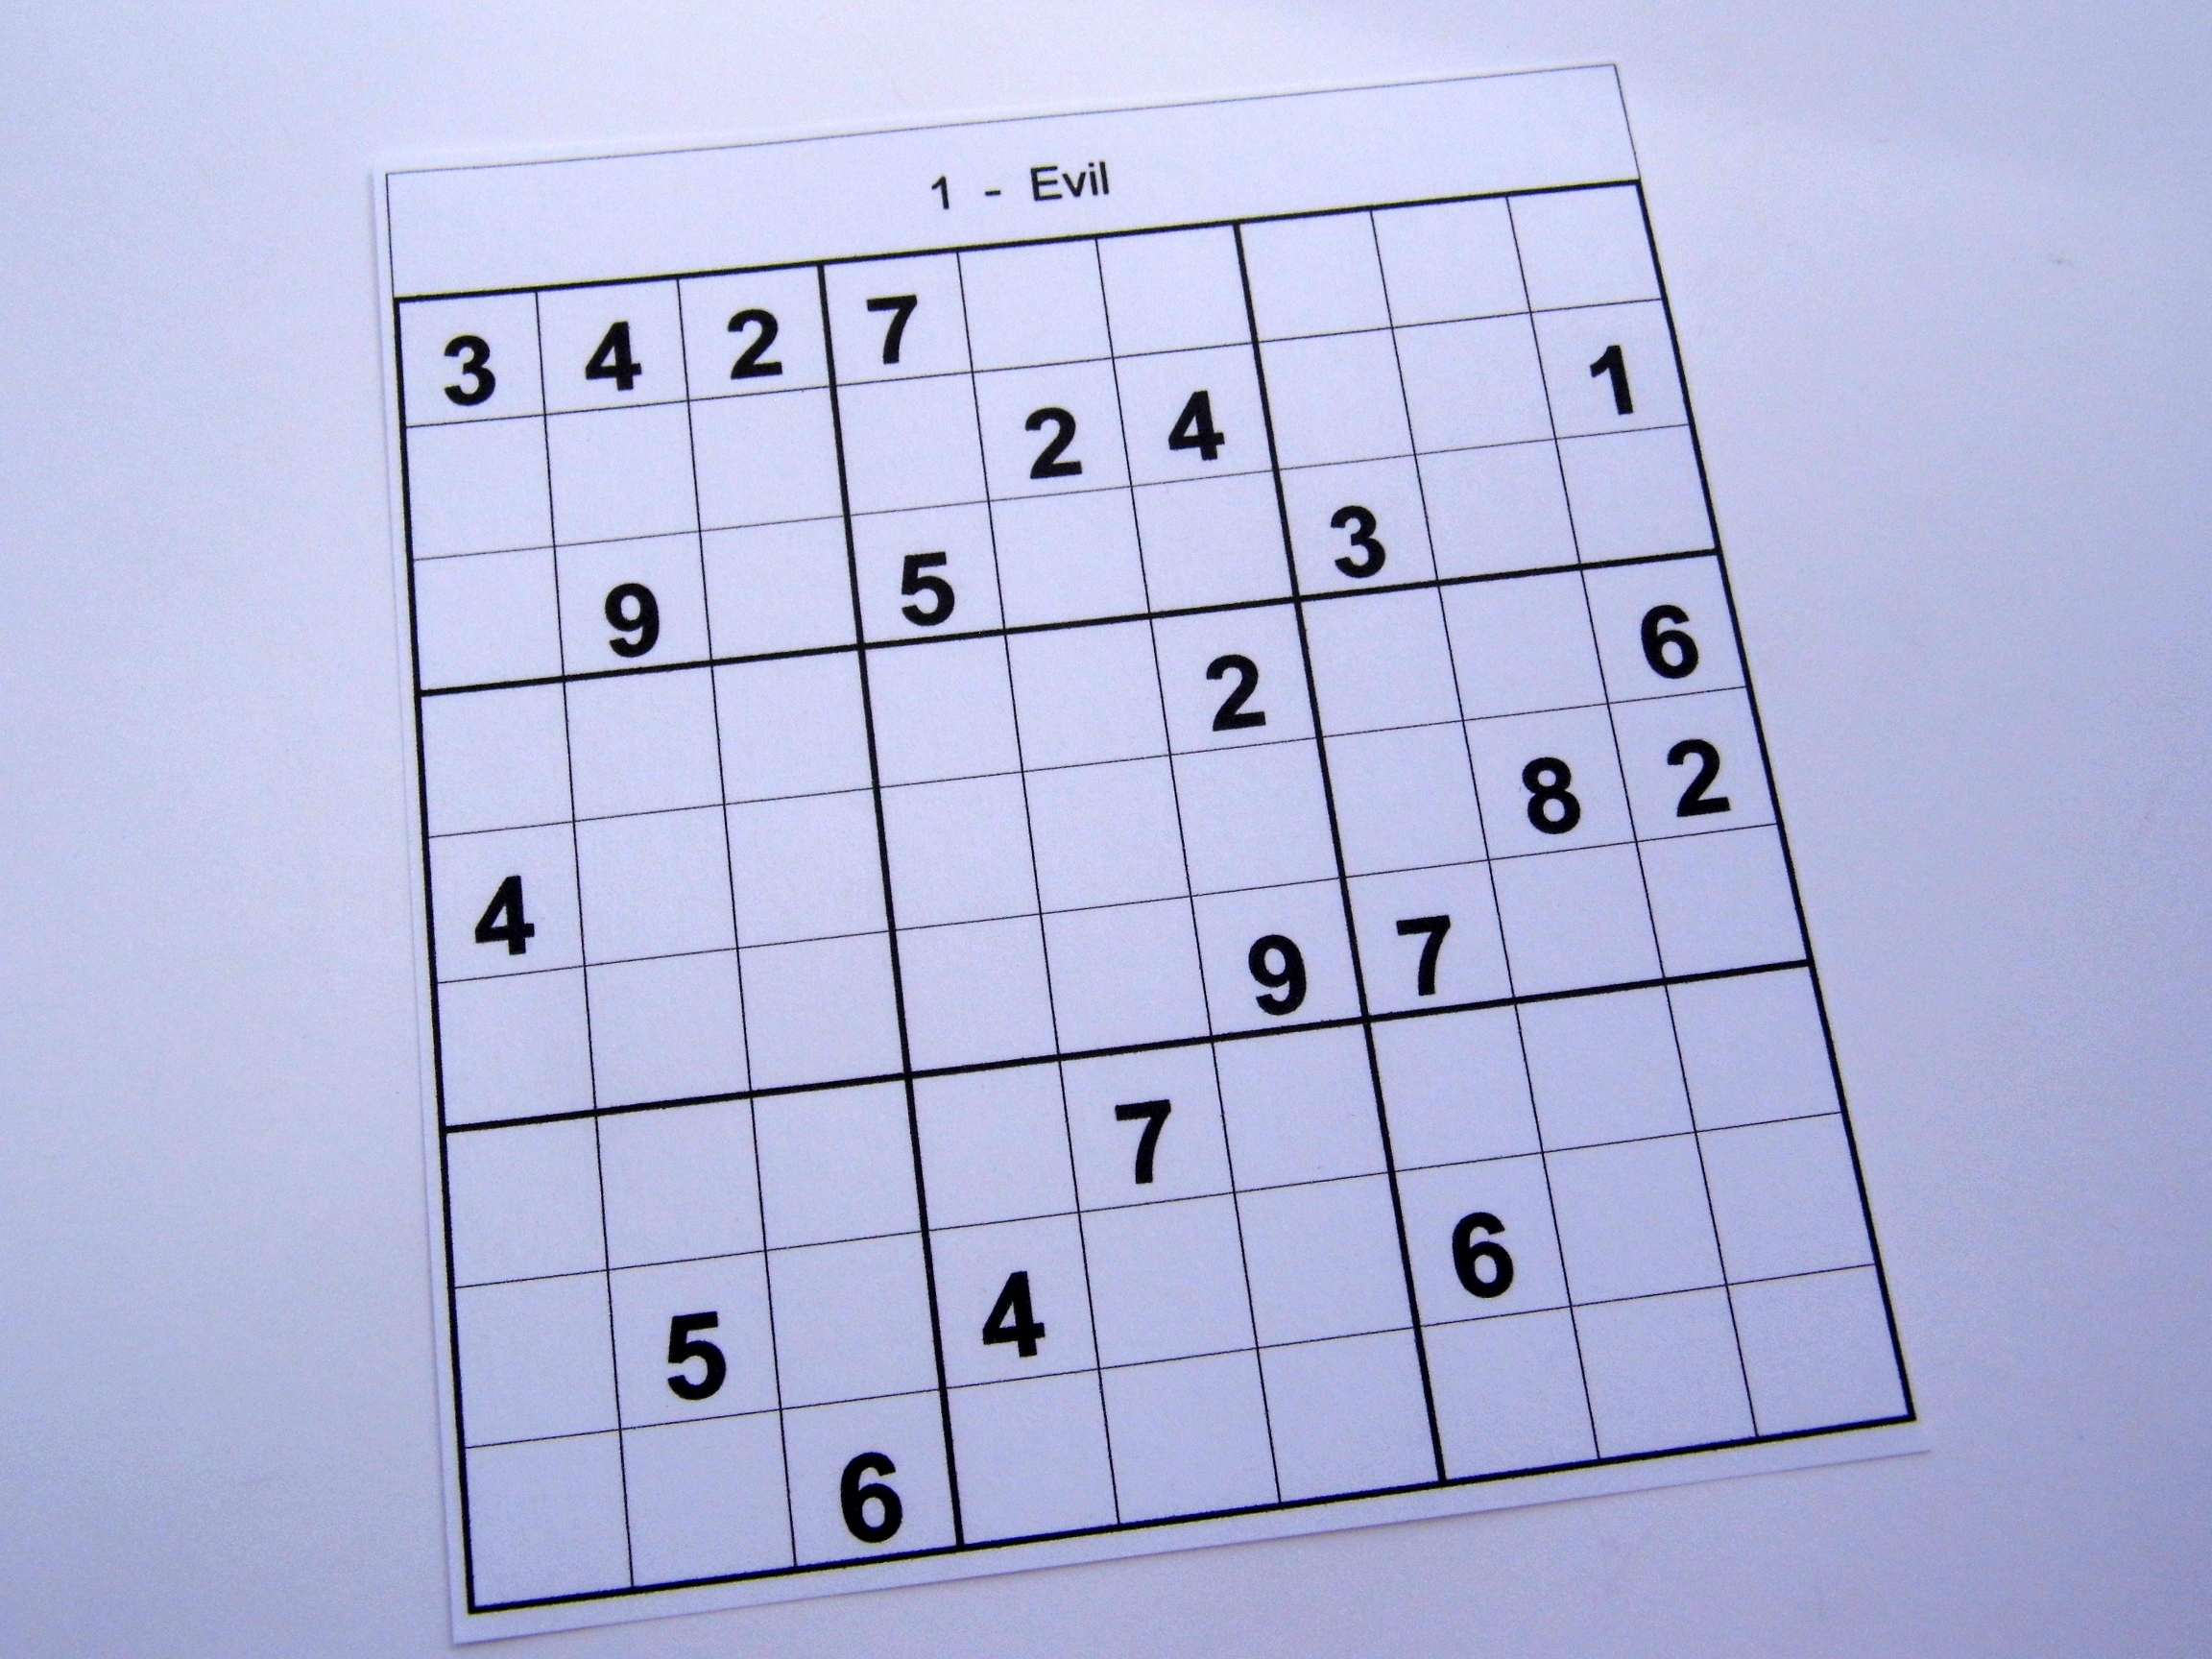 Archive Puzzles – 10 Hard Sudoku Puzzles – Books 1 To 10